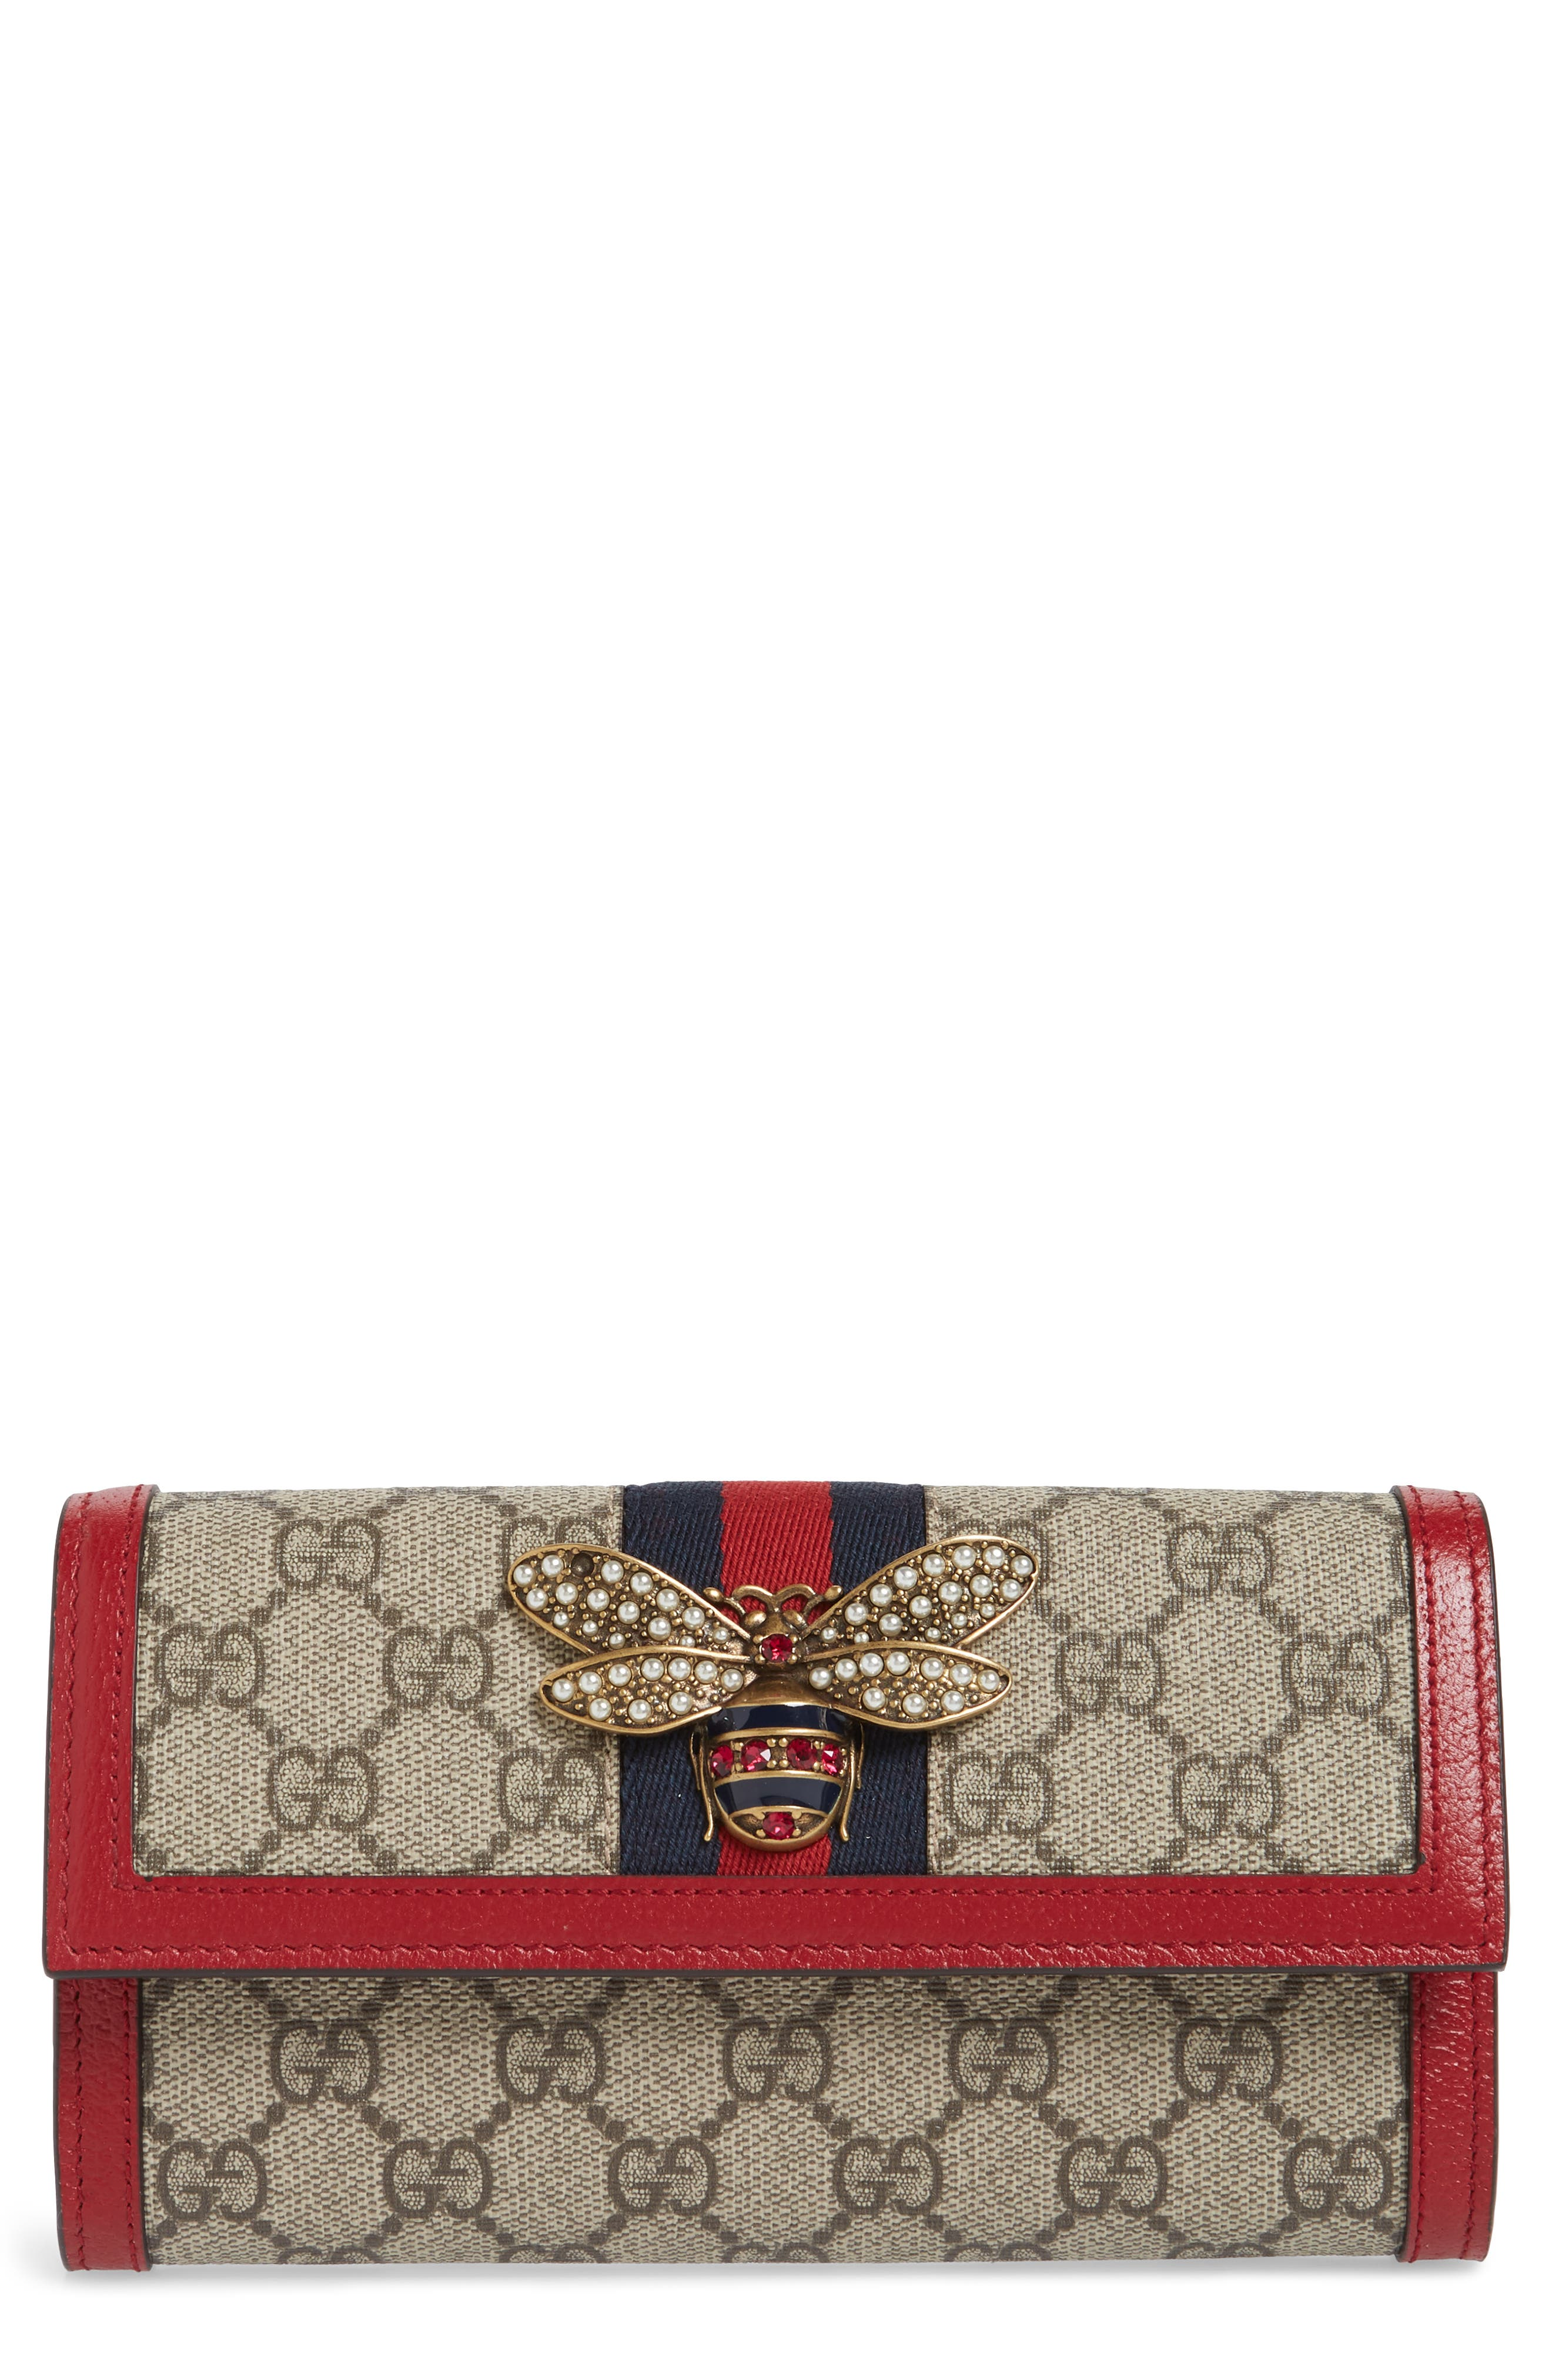 Queen Margaret GG Supreme Canvas Flap Wallet,                             Main thumbnail 1, color,                             BEIGE EBONY/ BLUE RED/ RUBY